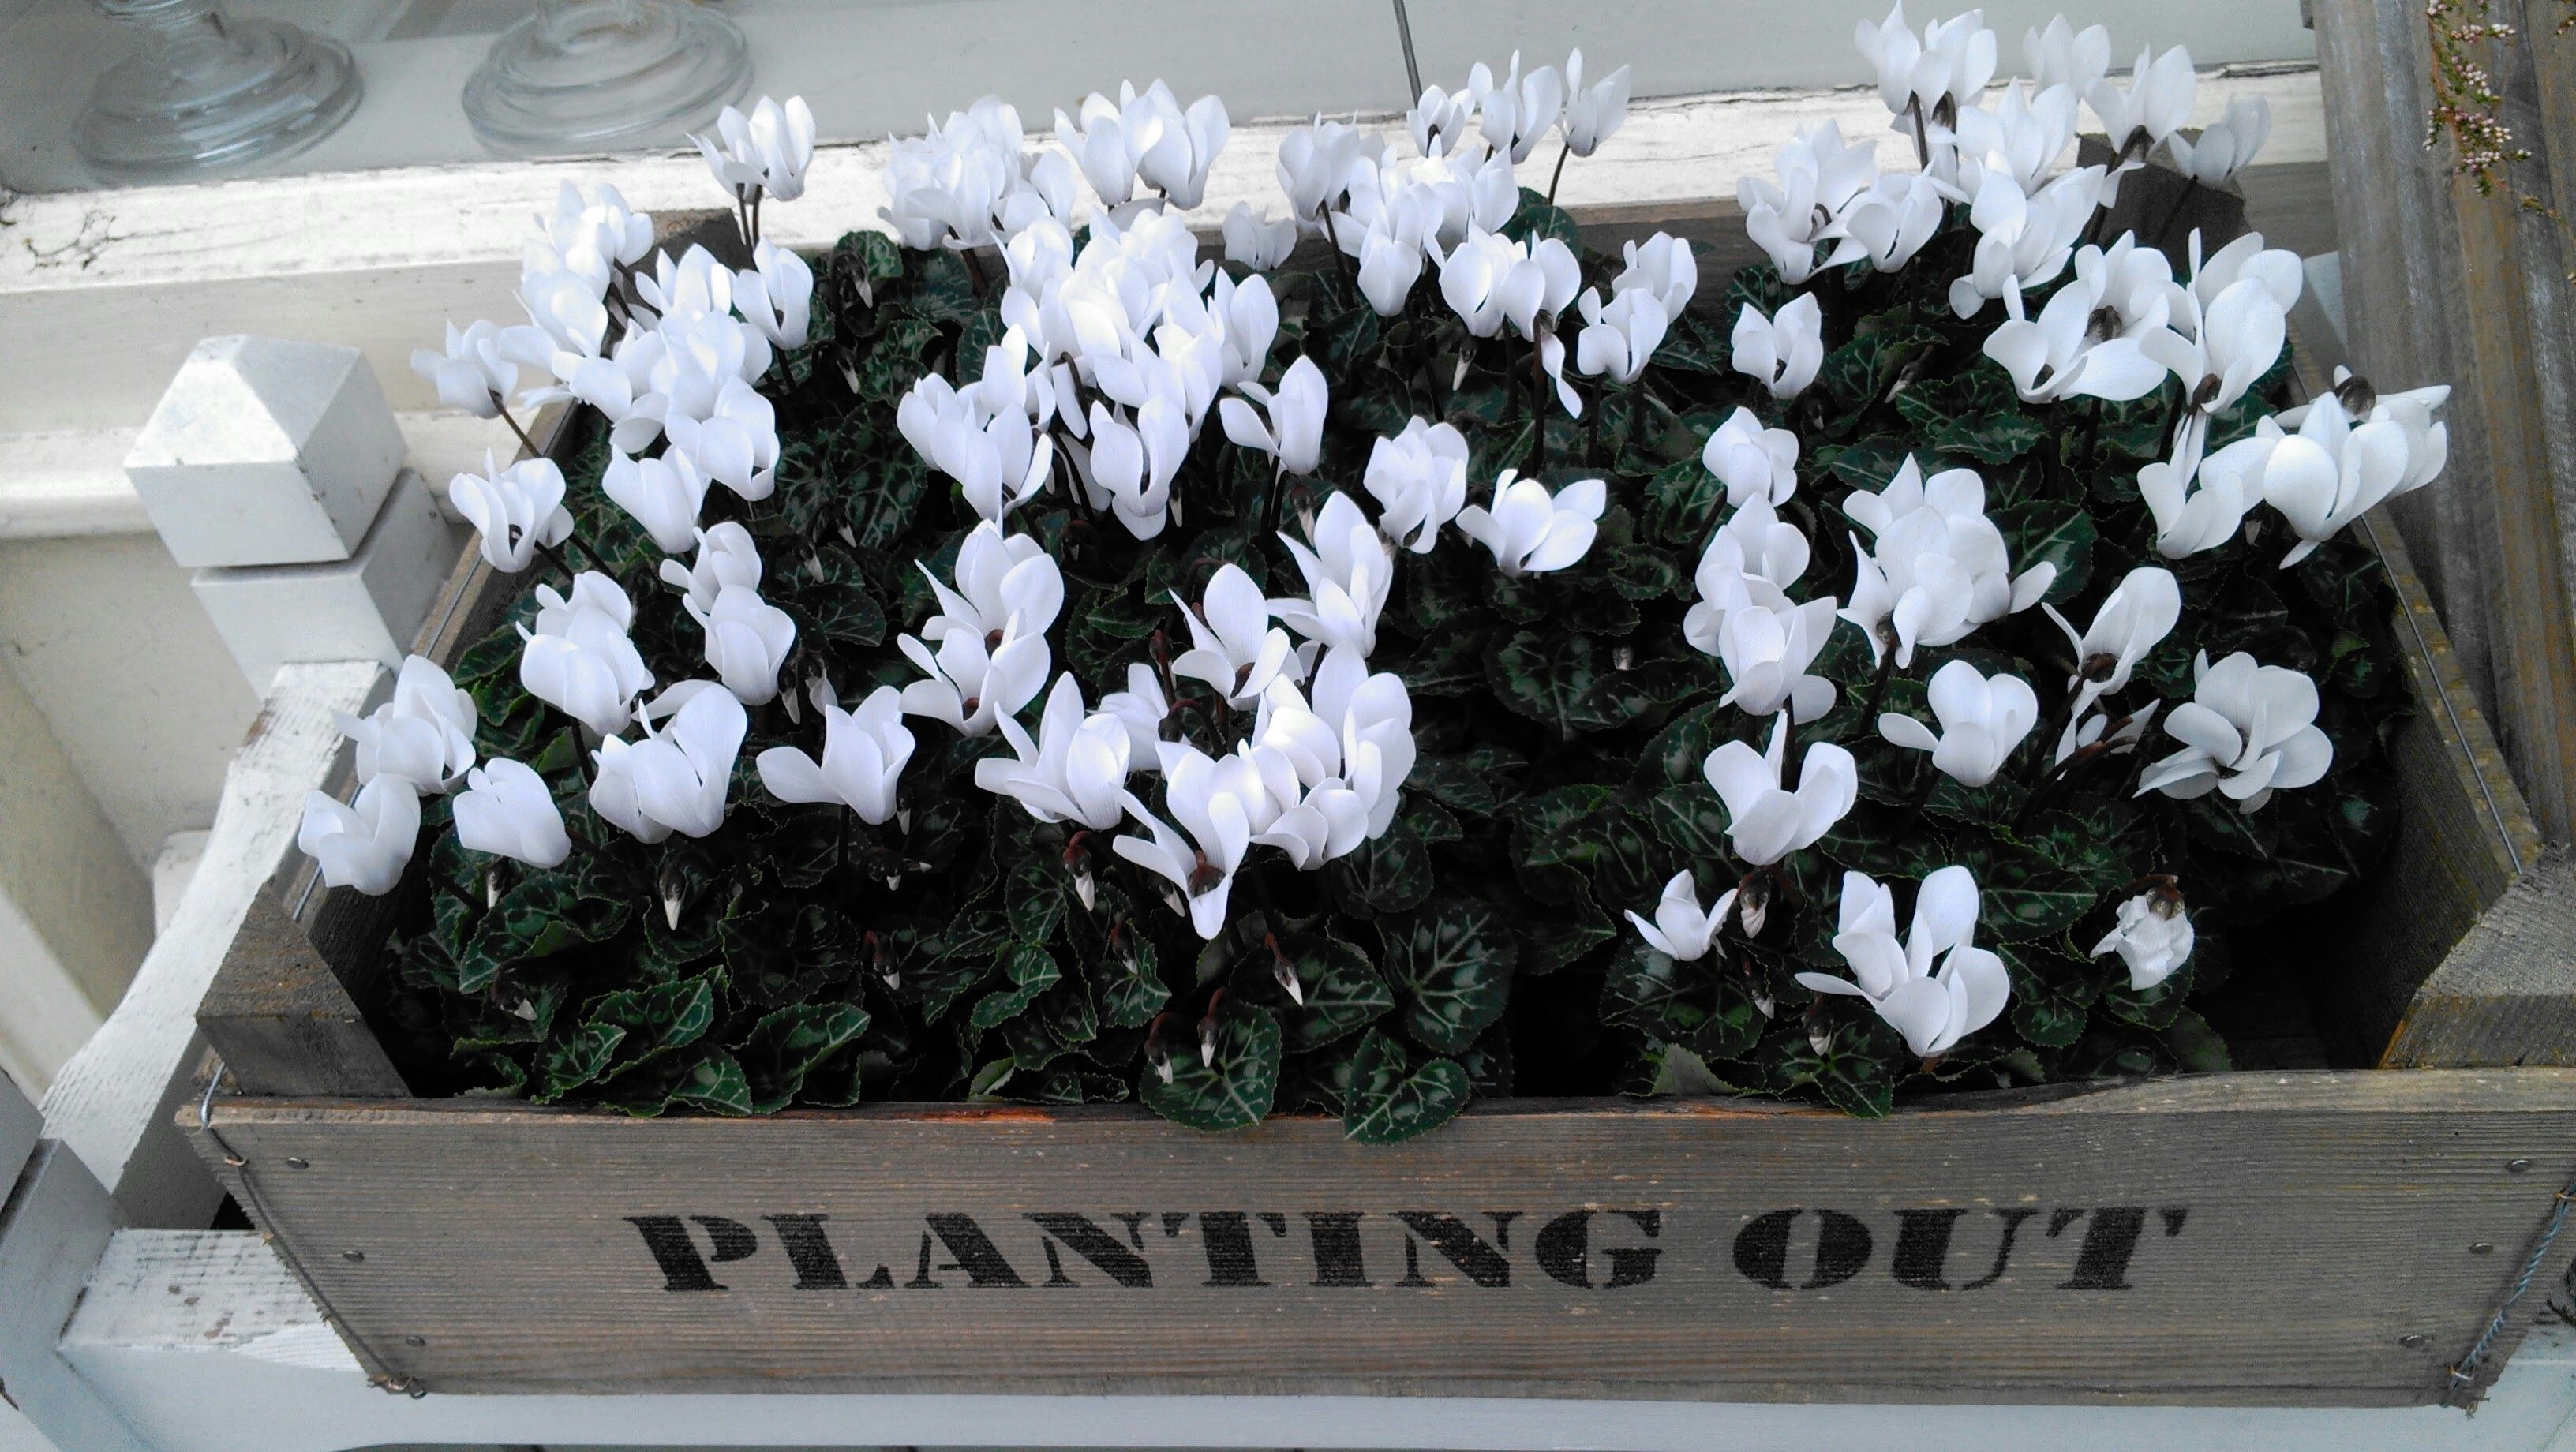 high angle view of white cyclamen flowers growing in wooden box 59d3c6c6685fbe0011d5930c